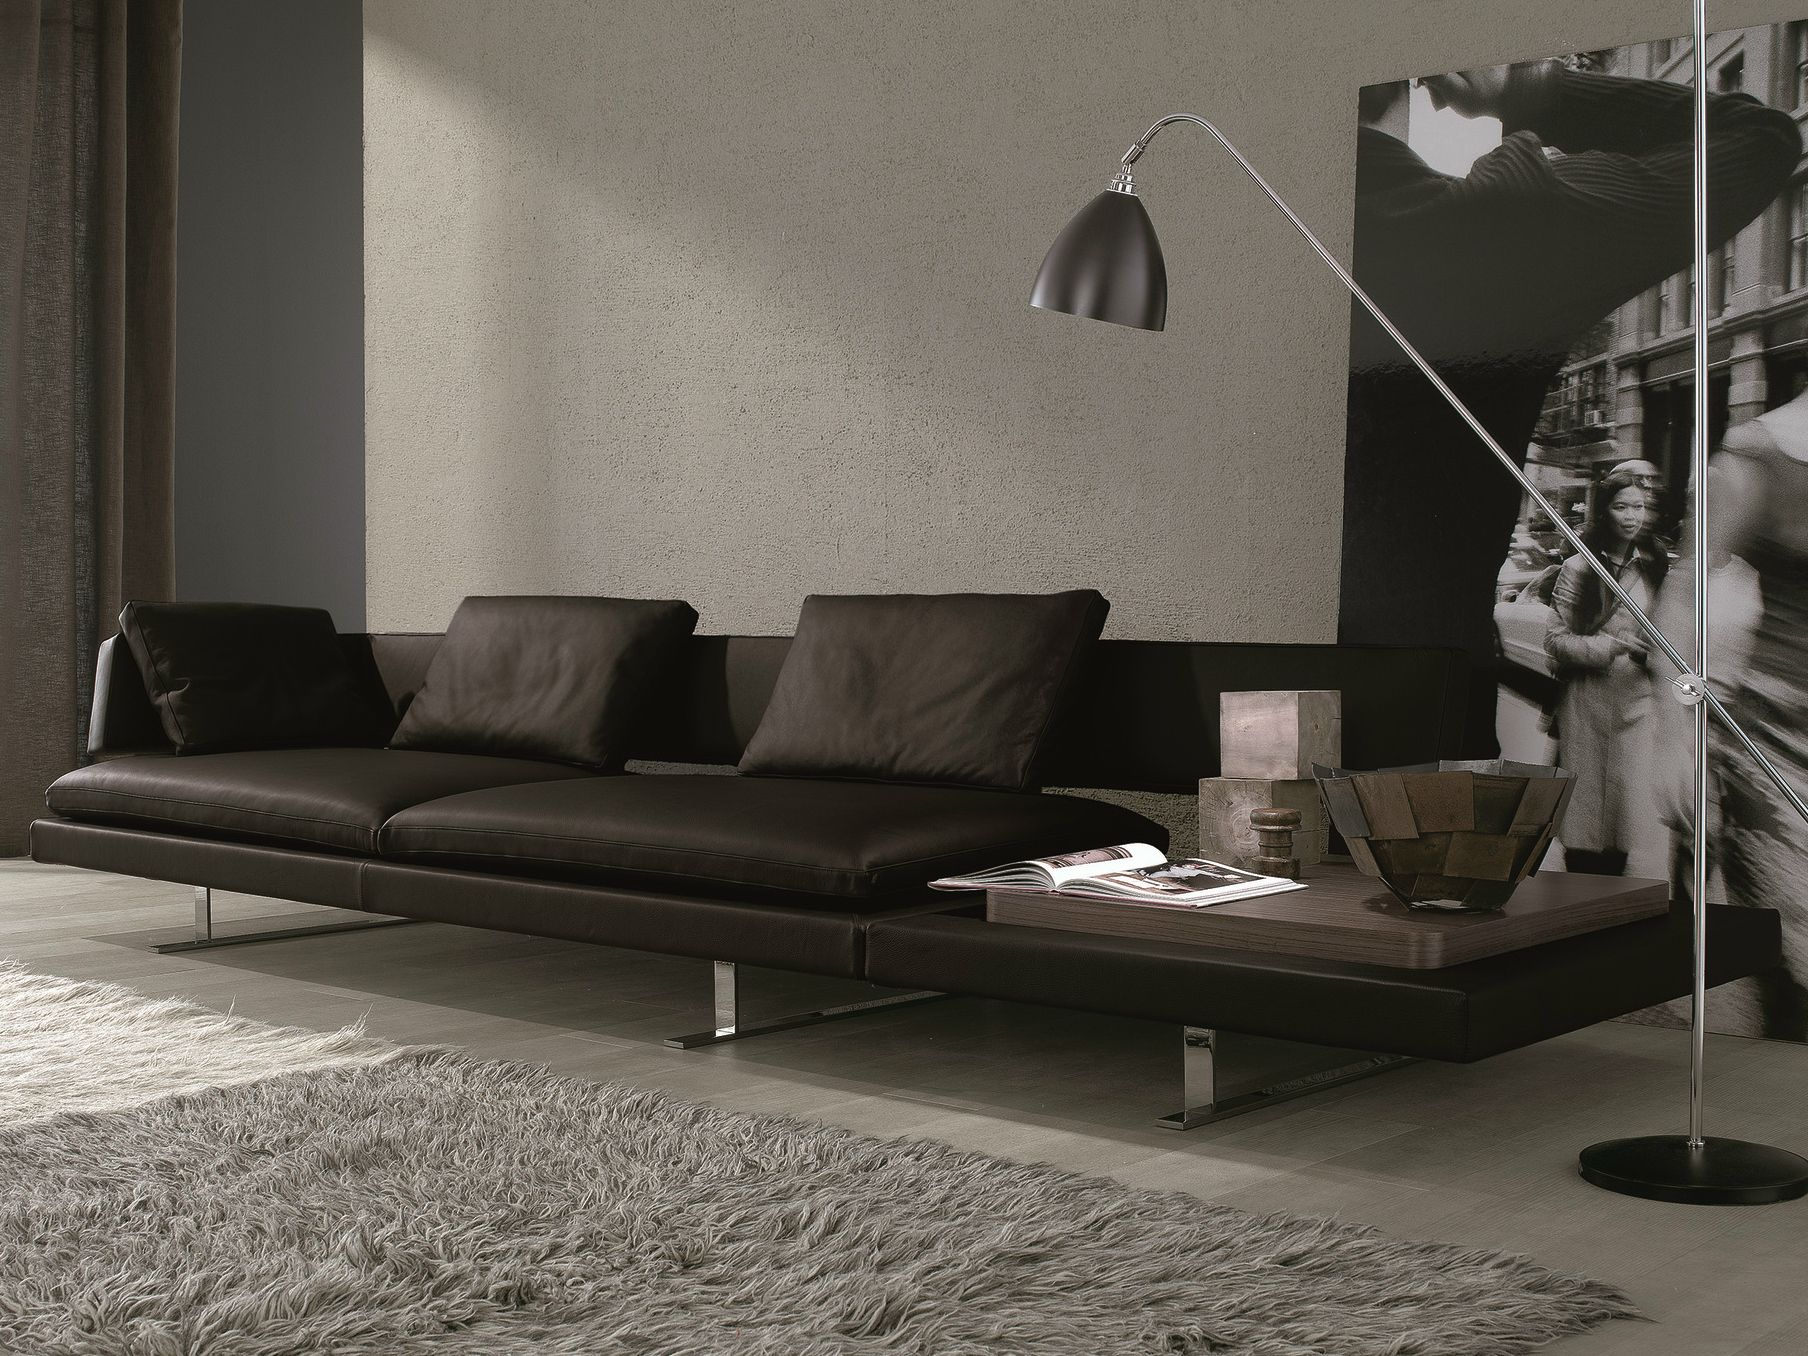 Beau Leather Sofa ByMauro Lipparini